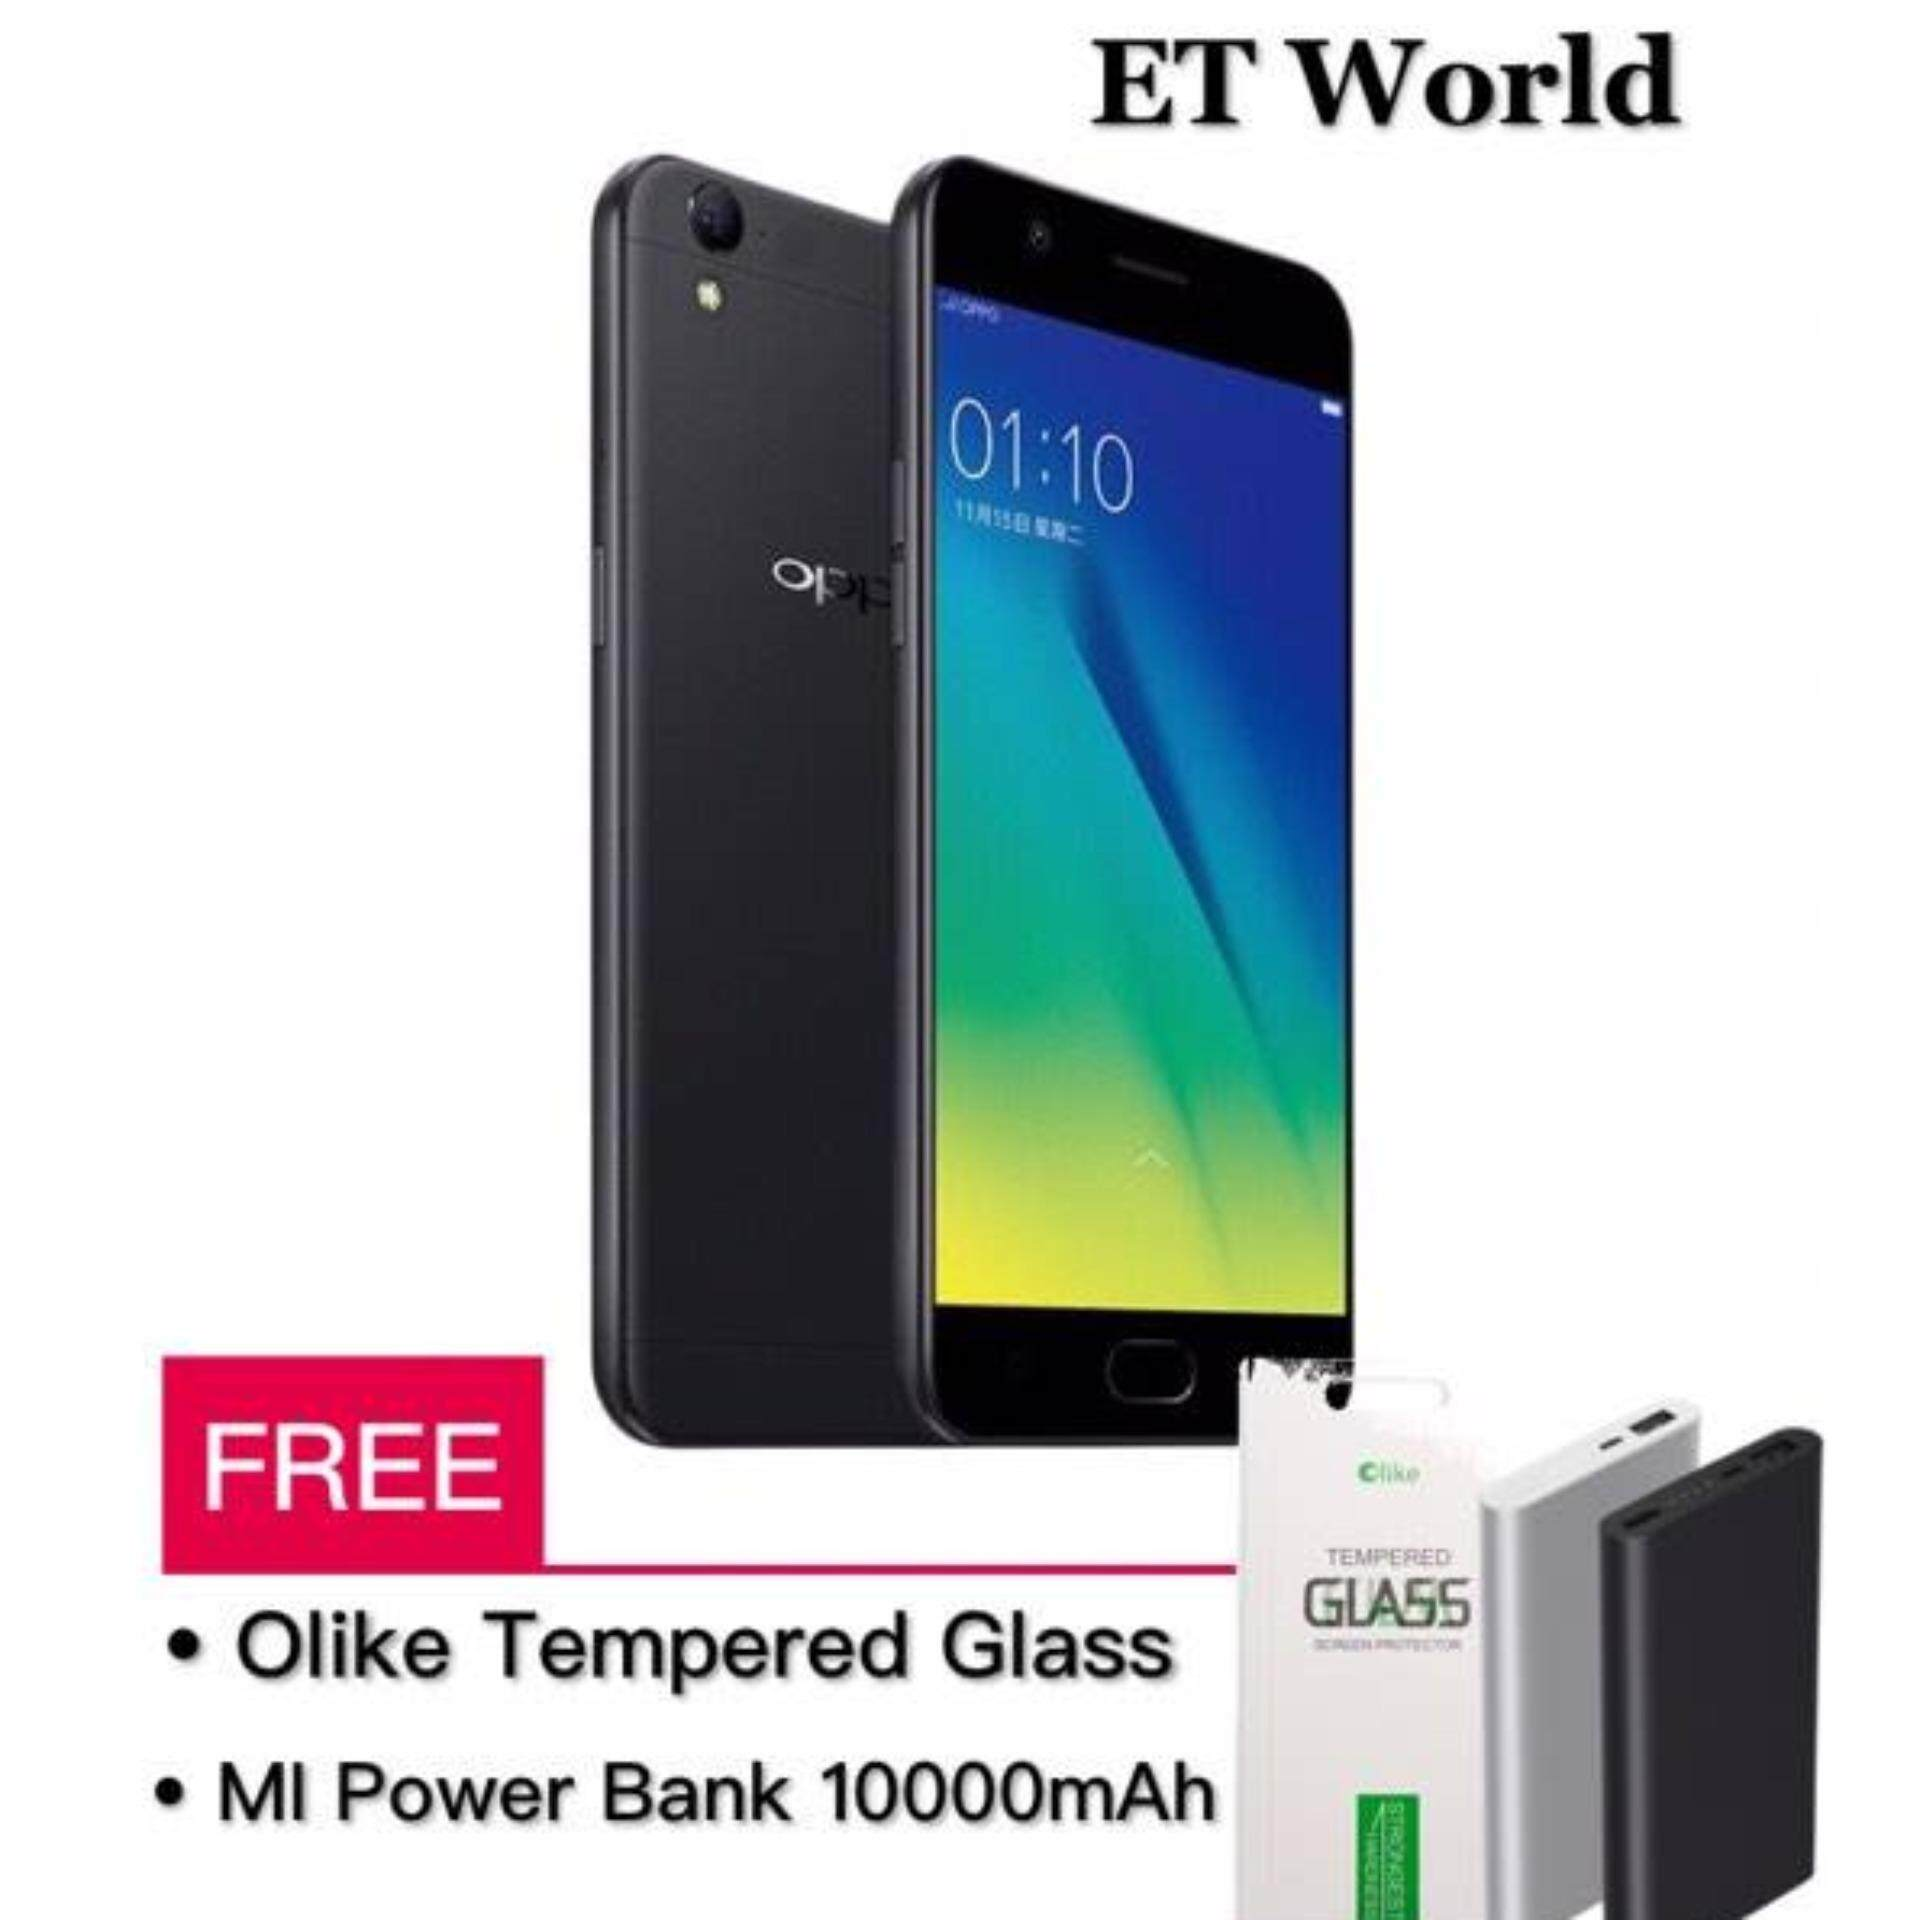 Oppo A37 Malaysia Mi Power Bank 10000mah Original Tempered Glass Screen Protector Cover Black 2gb 16gb